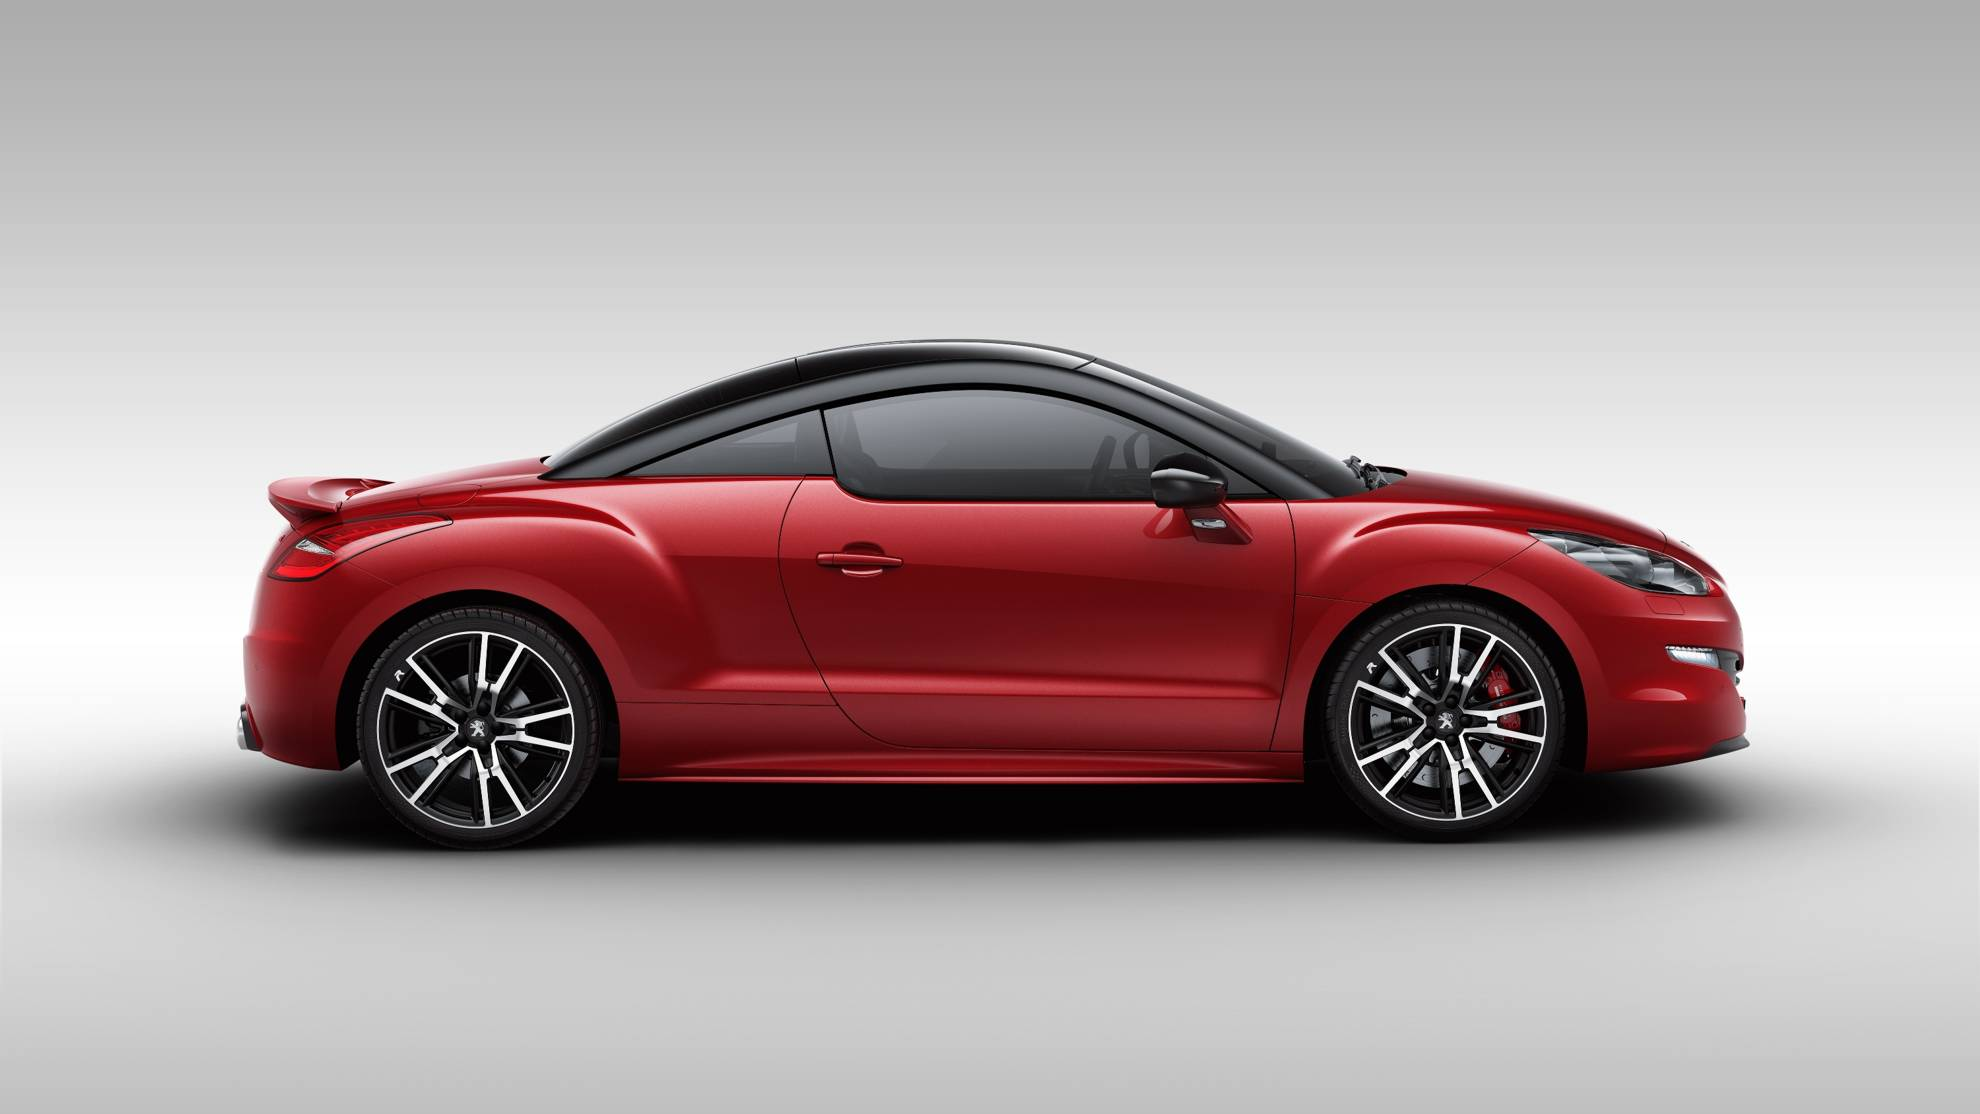 peugeot rcz r: performance and efficiency, from peugeot sport